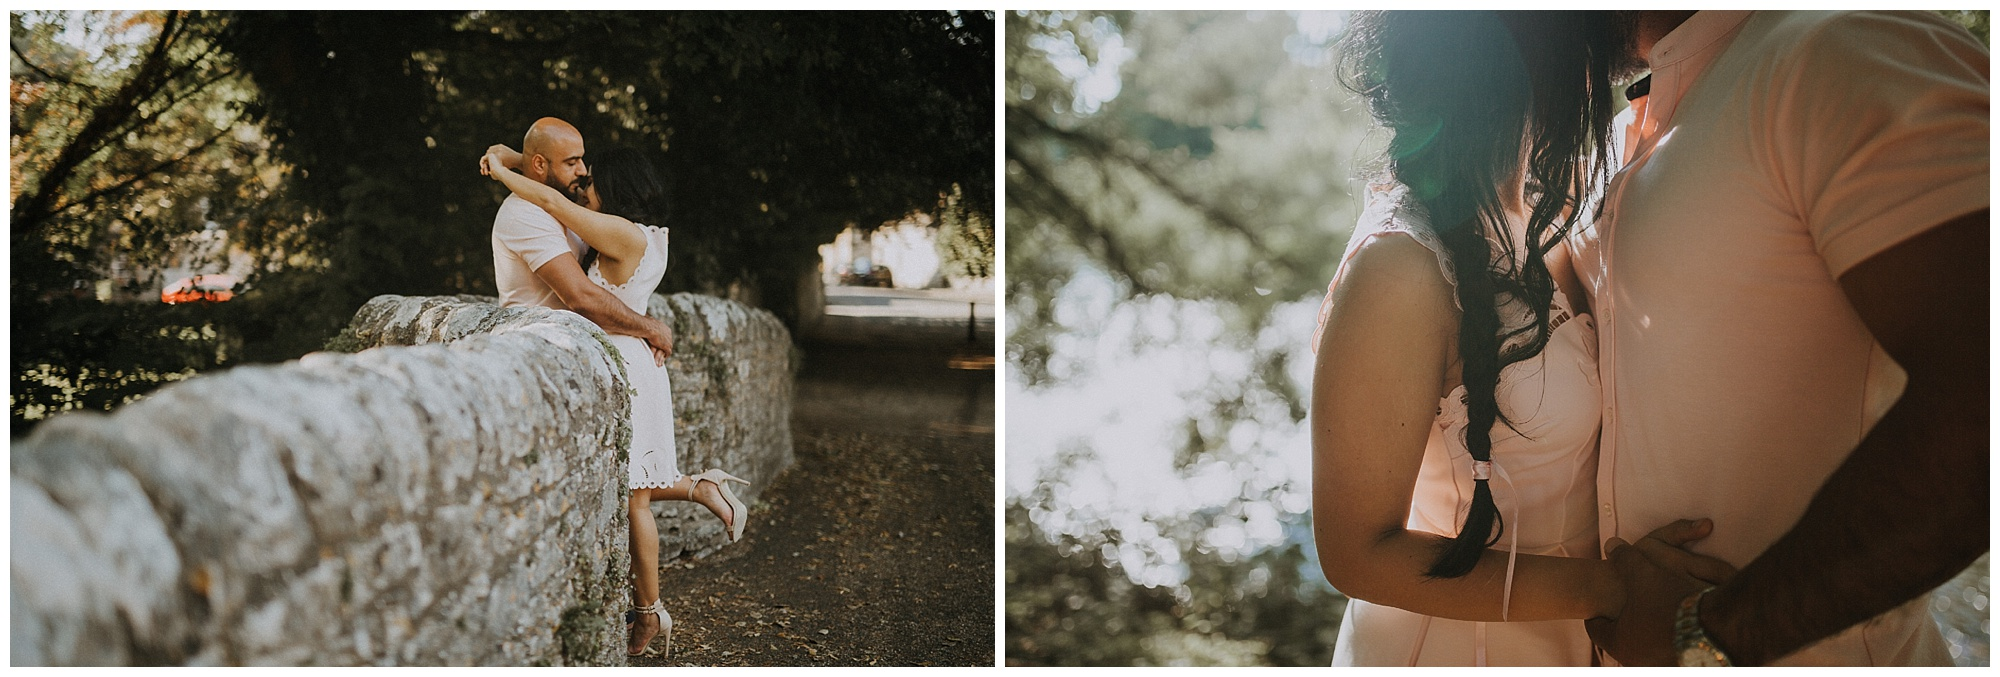 engagement session with a couple